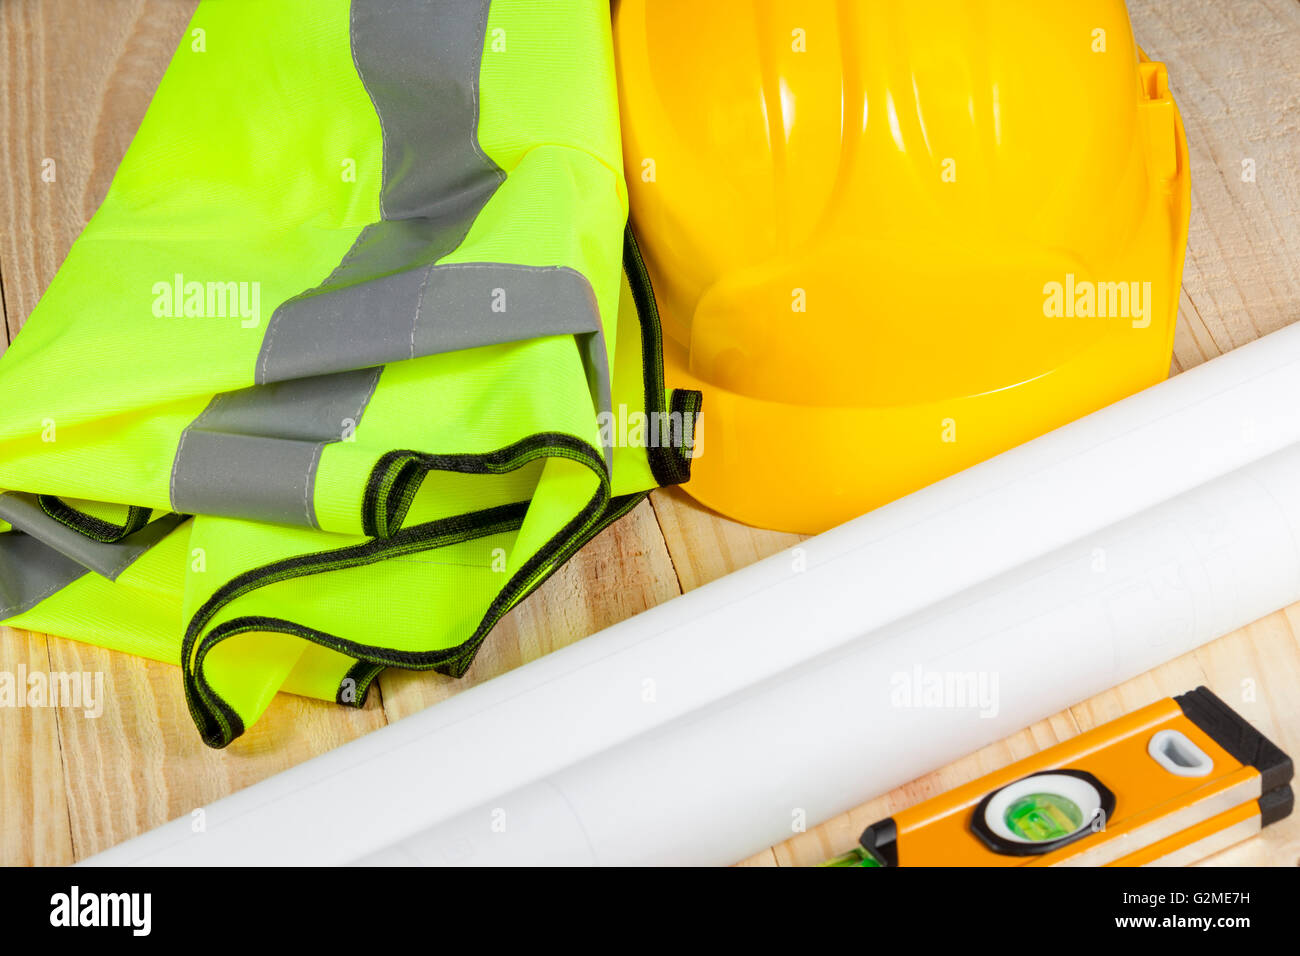 High visibility vest laying on a wooden floor with a yellow hard hat and a spirit level - Stock Image